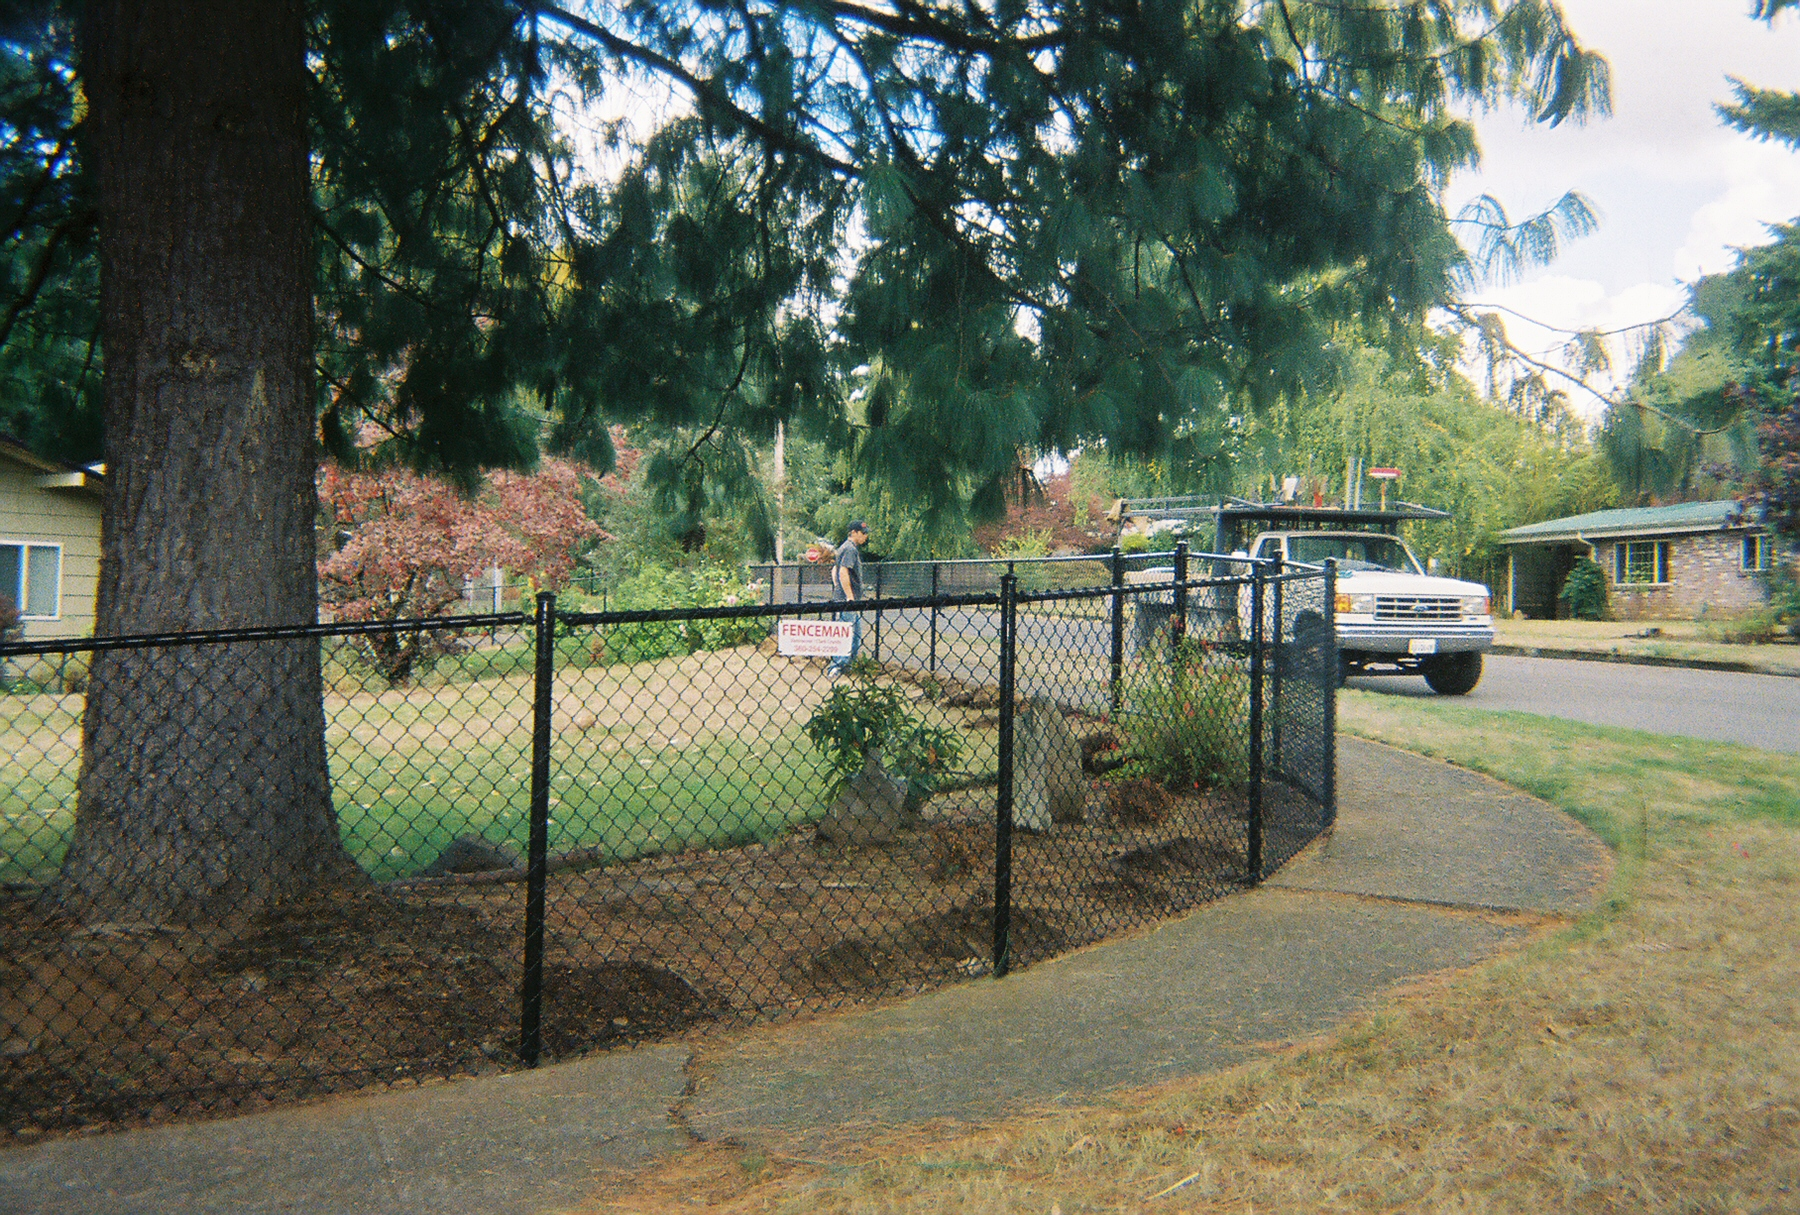 A great option to have a beautiful fence without the added expense of ornamental fences. Contact Vancouver Washington's Best Fence Builders. The Fenceman Fence Company installs wood, vinyl, chain link and ornamental iron fences. We also offer materials for the do it yourselfer.